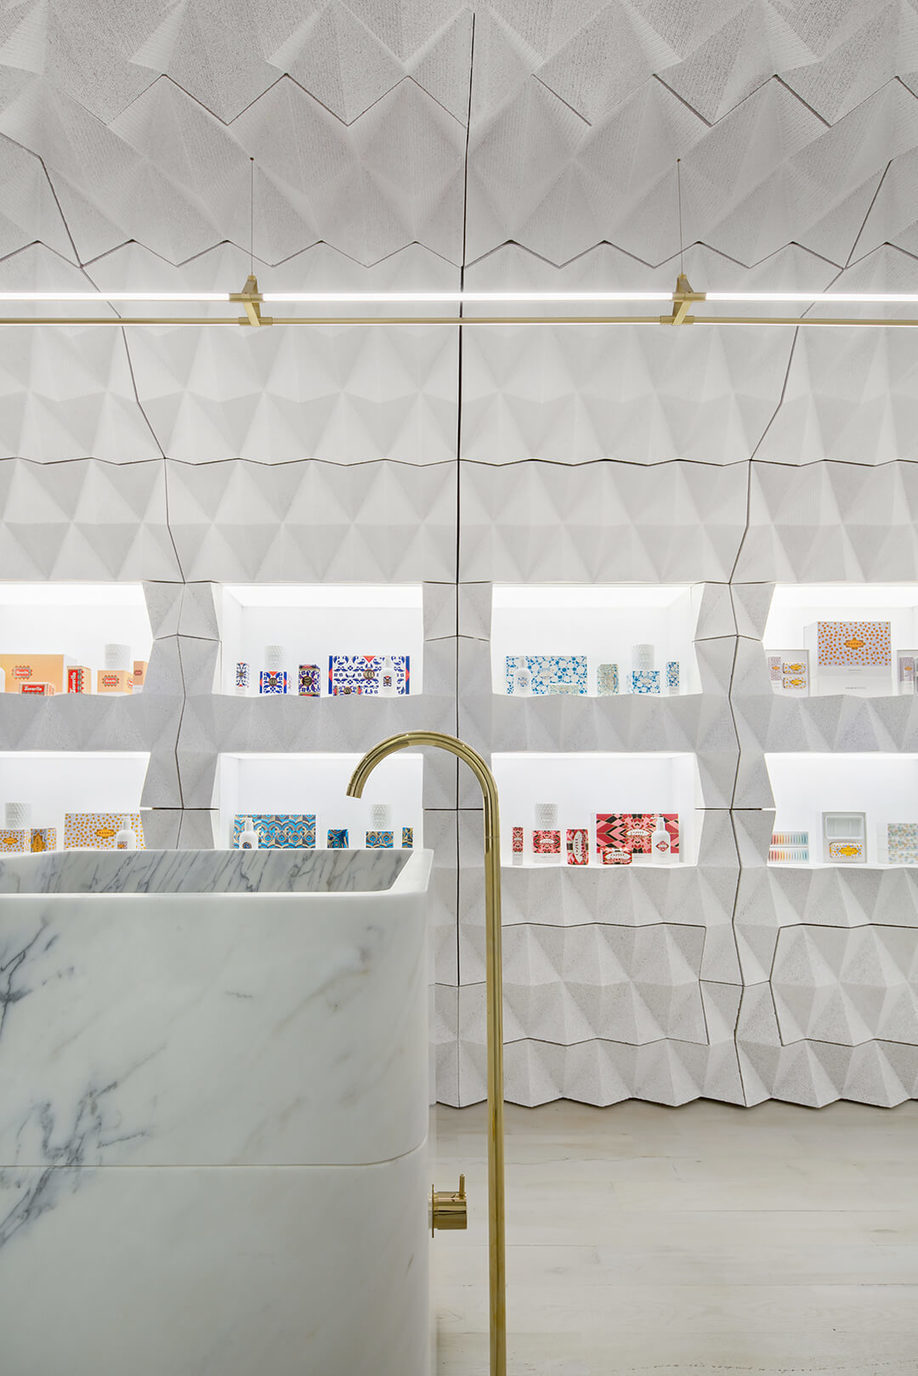 Those eye-catching Portuguese soap bars have finally crossed the Atlantic - News - Frameweb